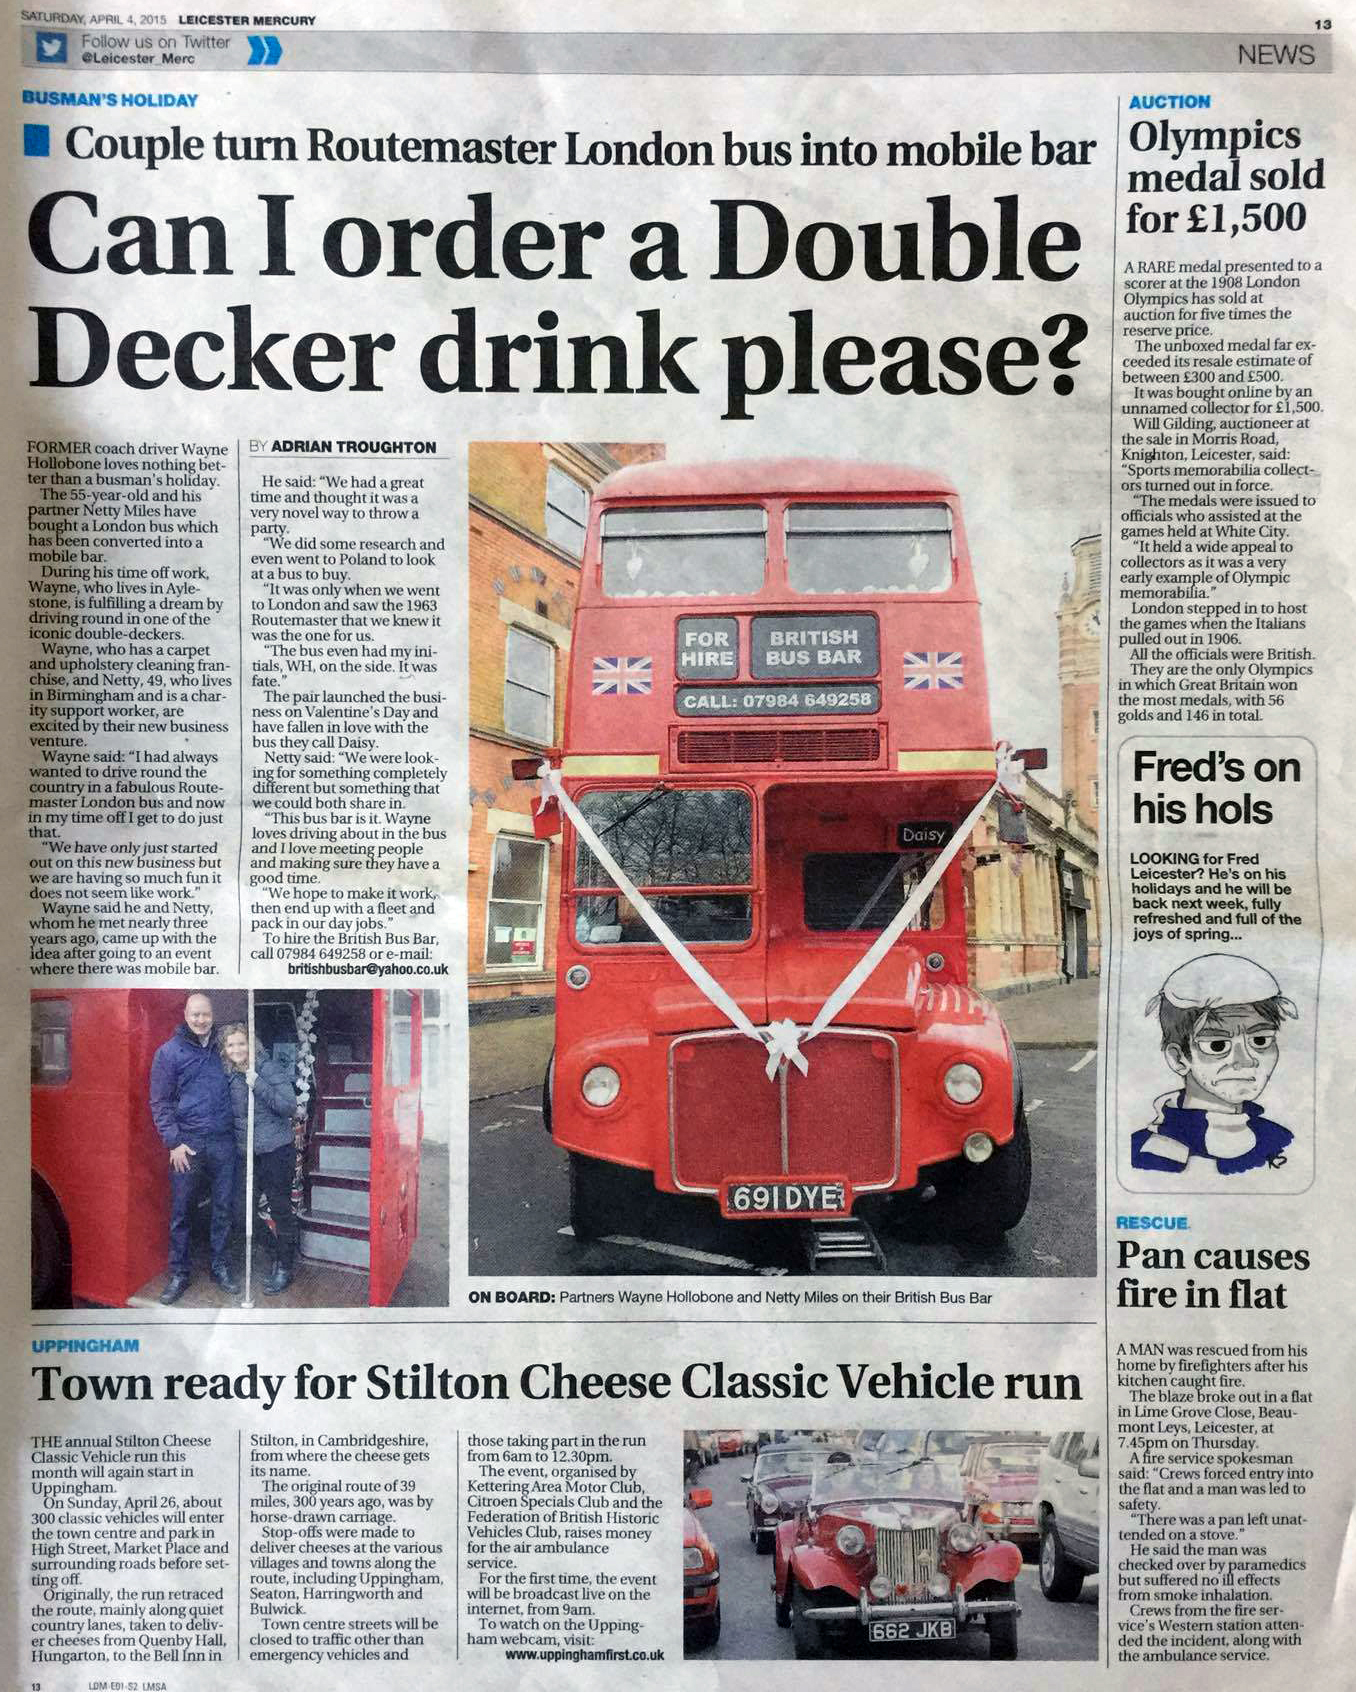 British bus bar newspaper article